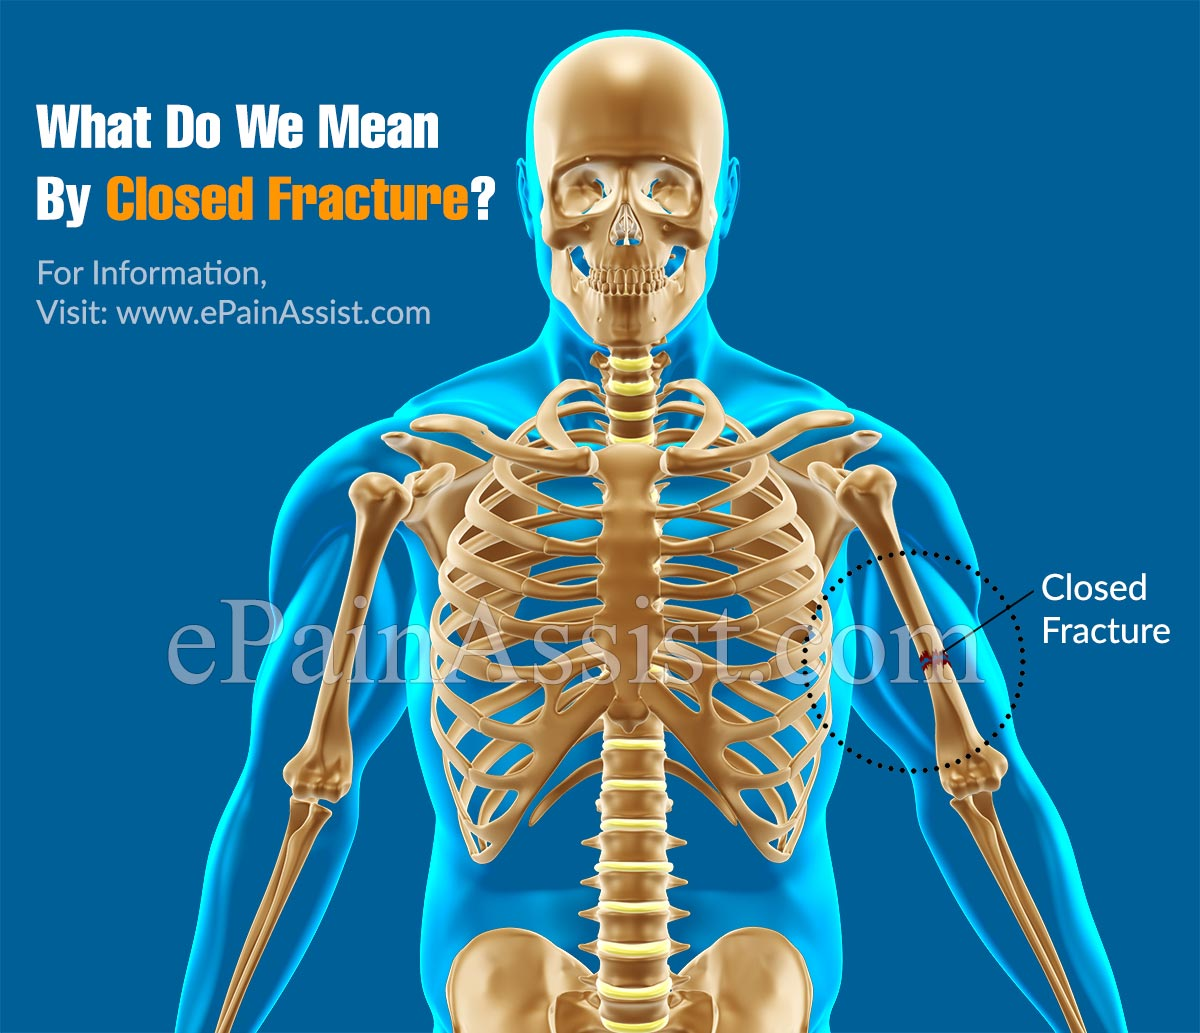 What Do We Mean By Closed Fracture?